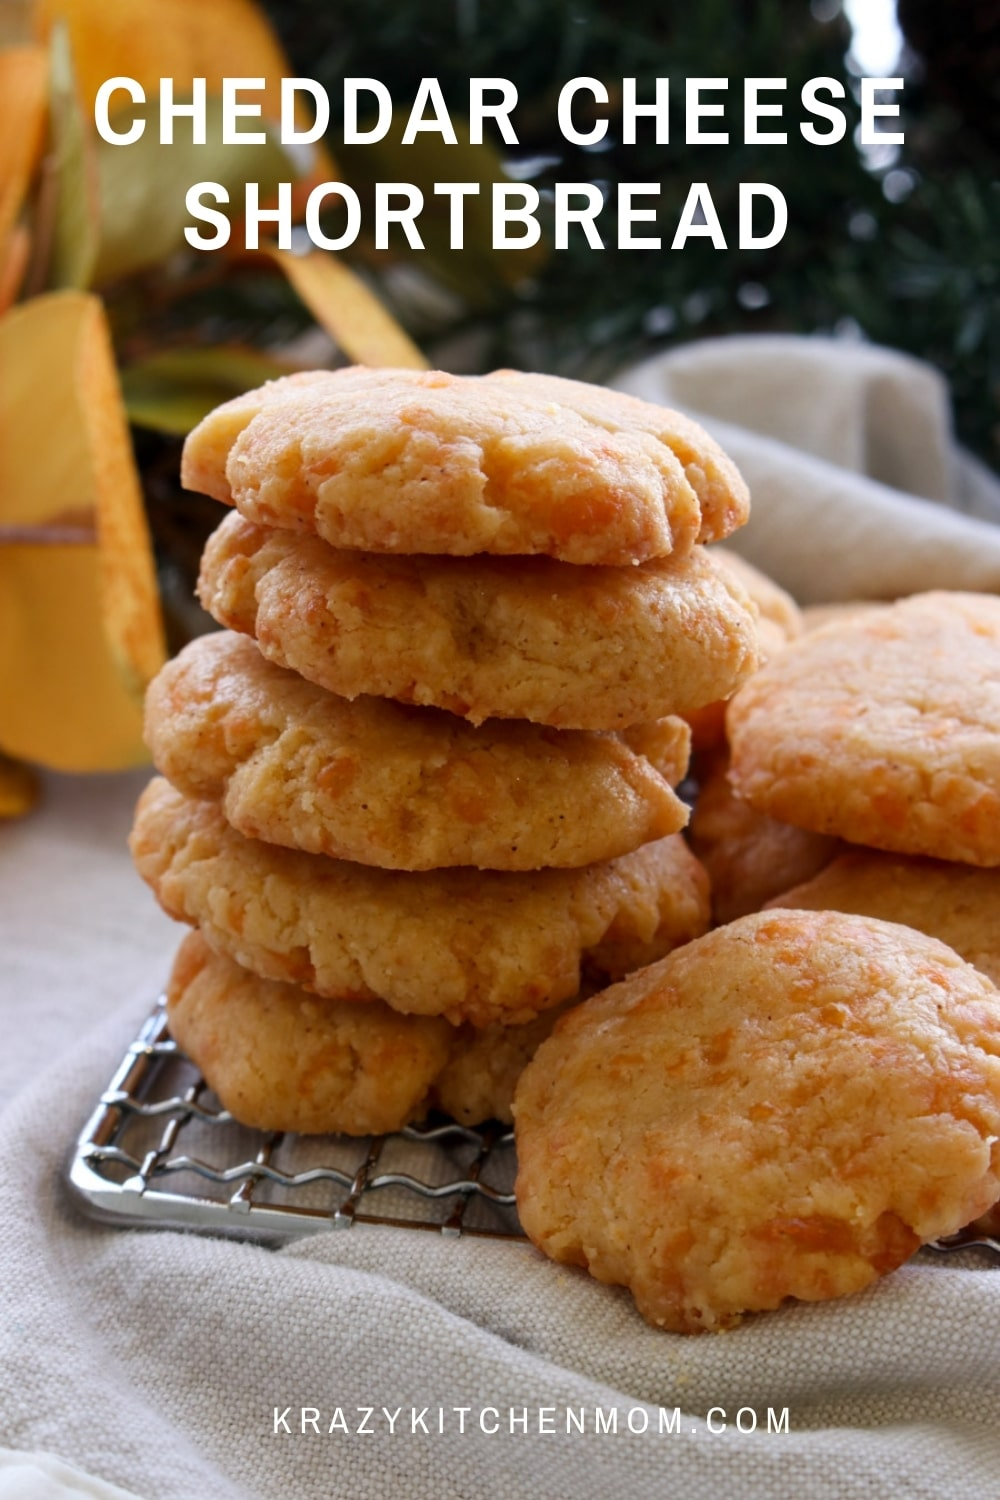 These homemade cheese shortbreads are a great addition to your holiday snacks and appetizers. They are so addictive you'll want to make a double batch.  via @krazykitchenmom